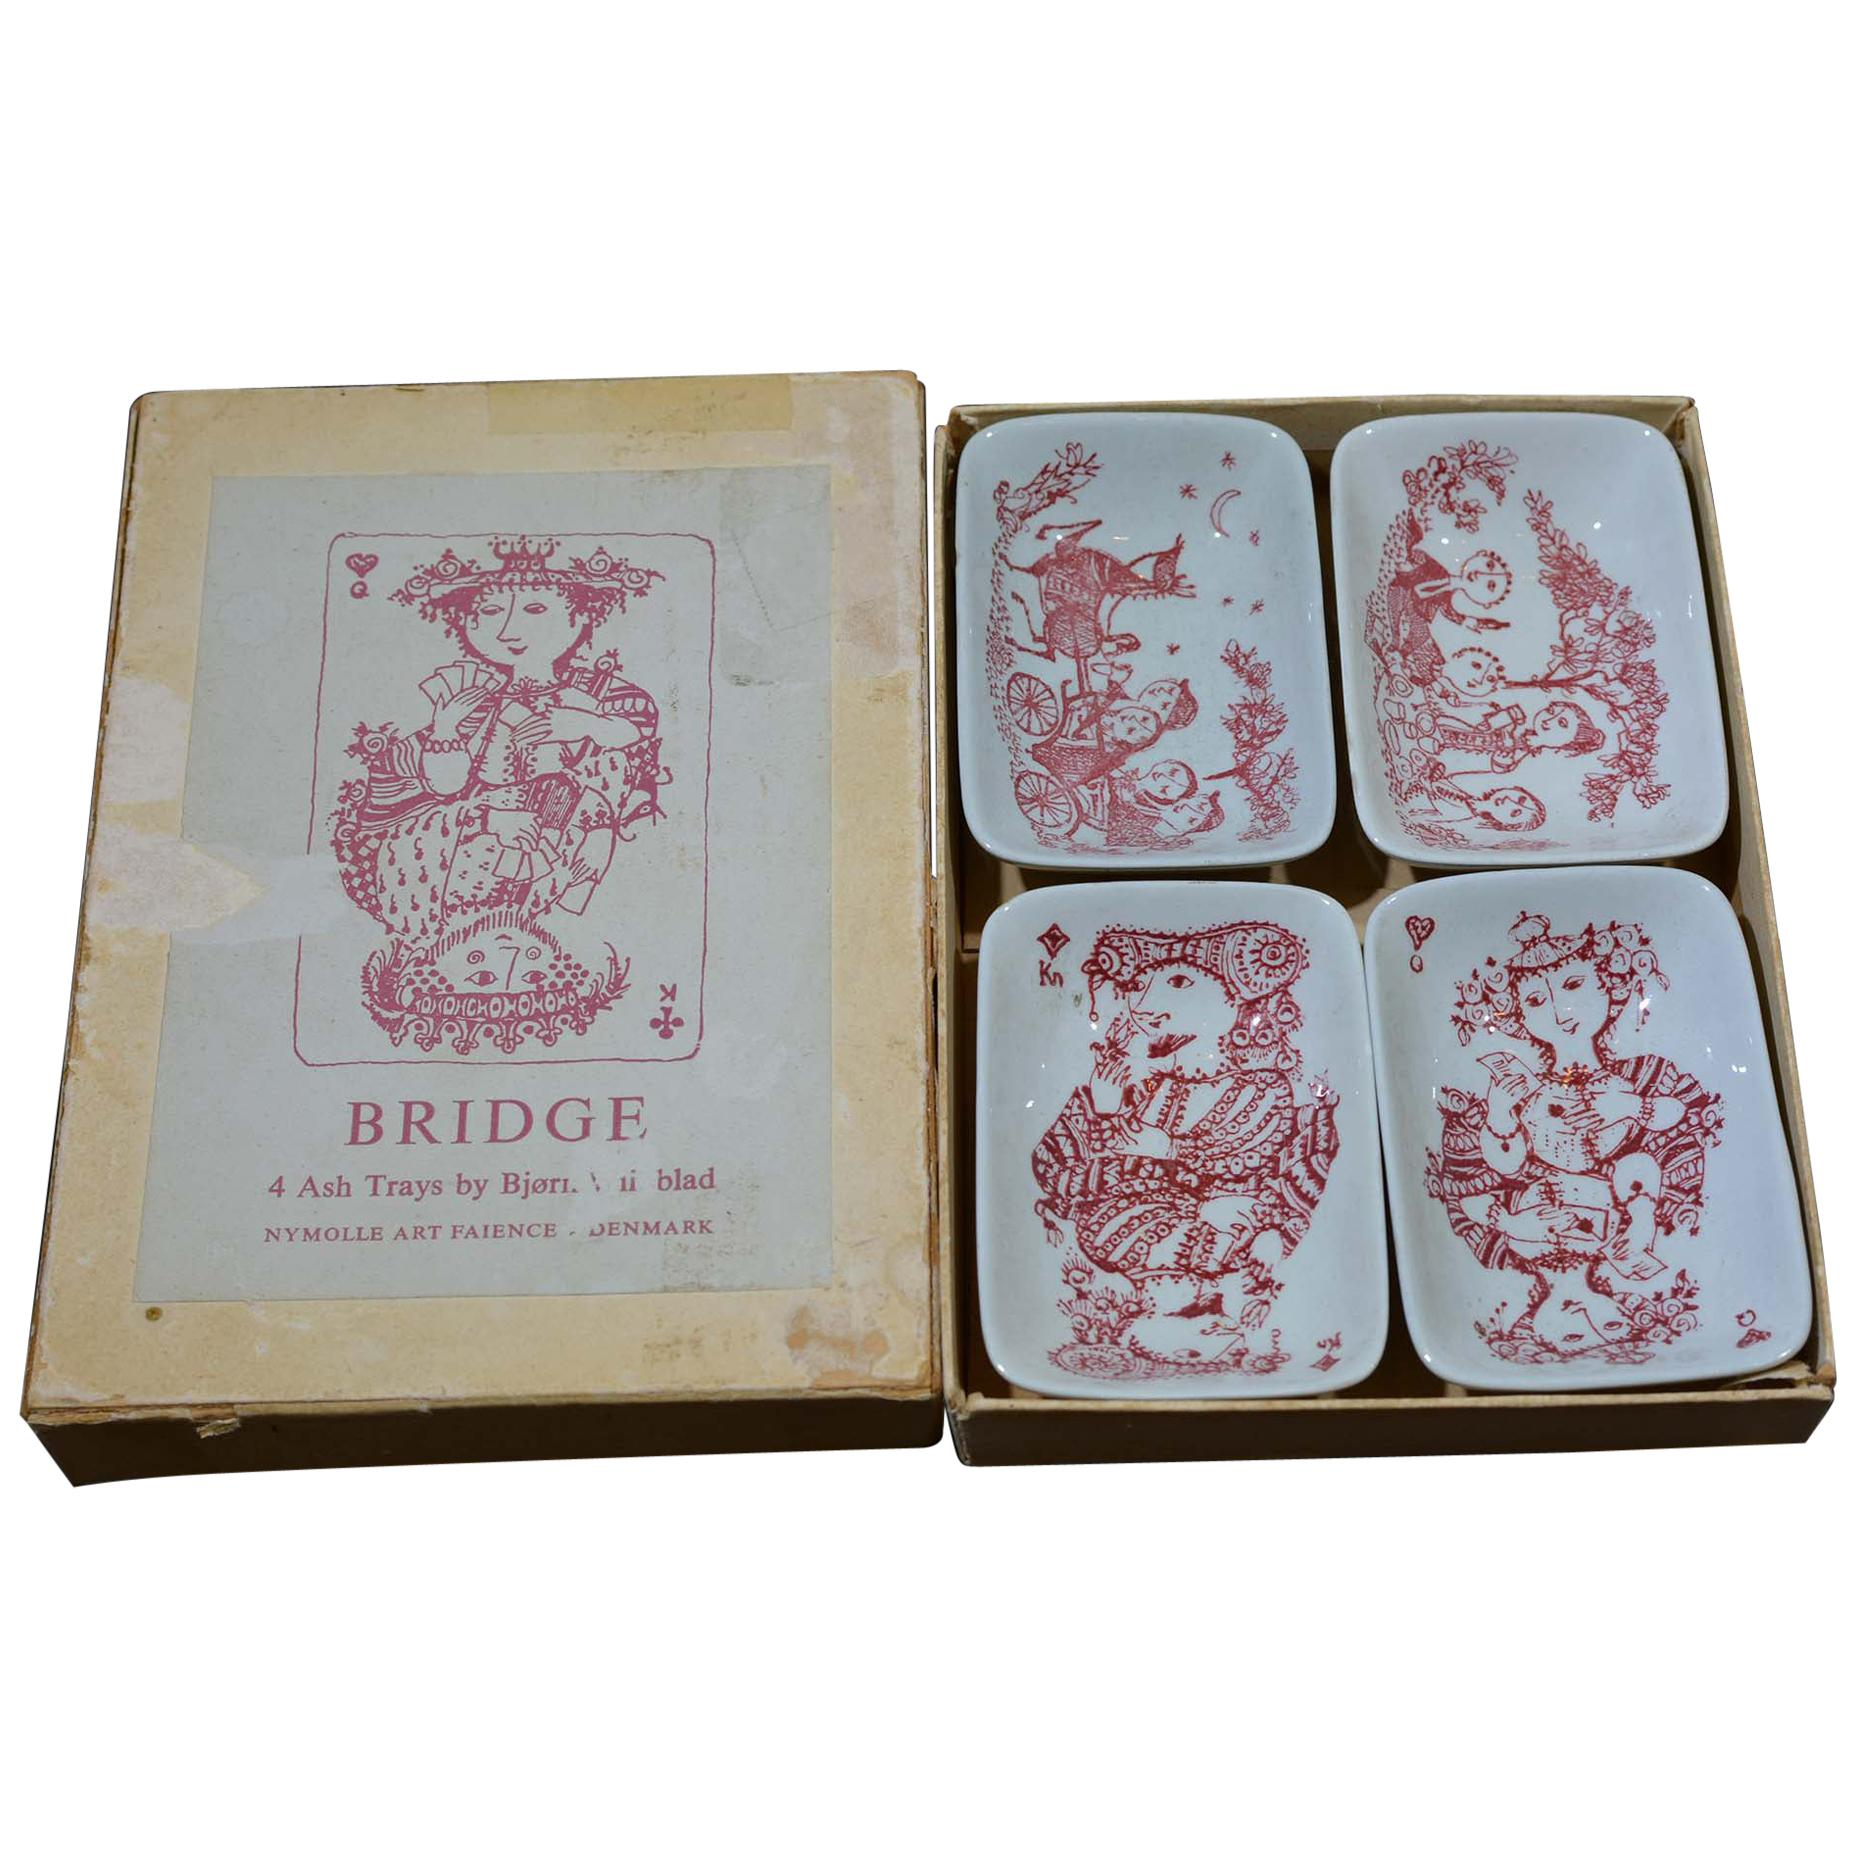 Antique and Vintage Ashtrays - 755 For Sale at 1stdibs